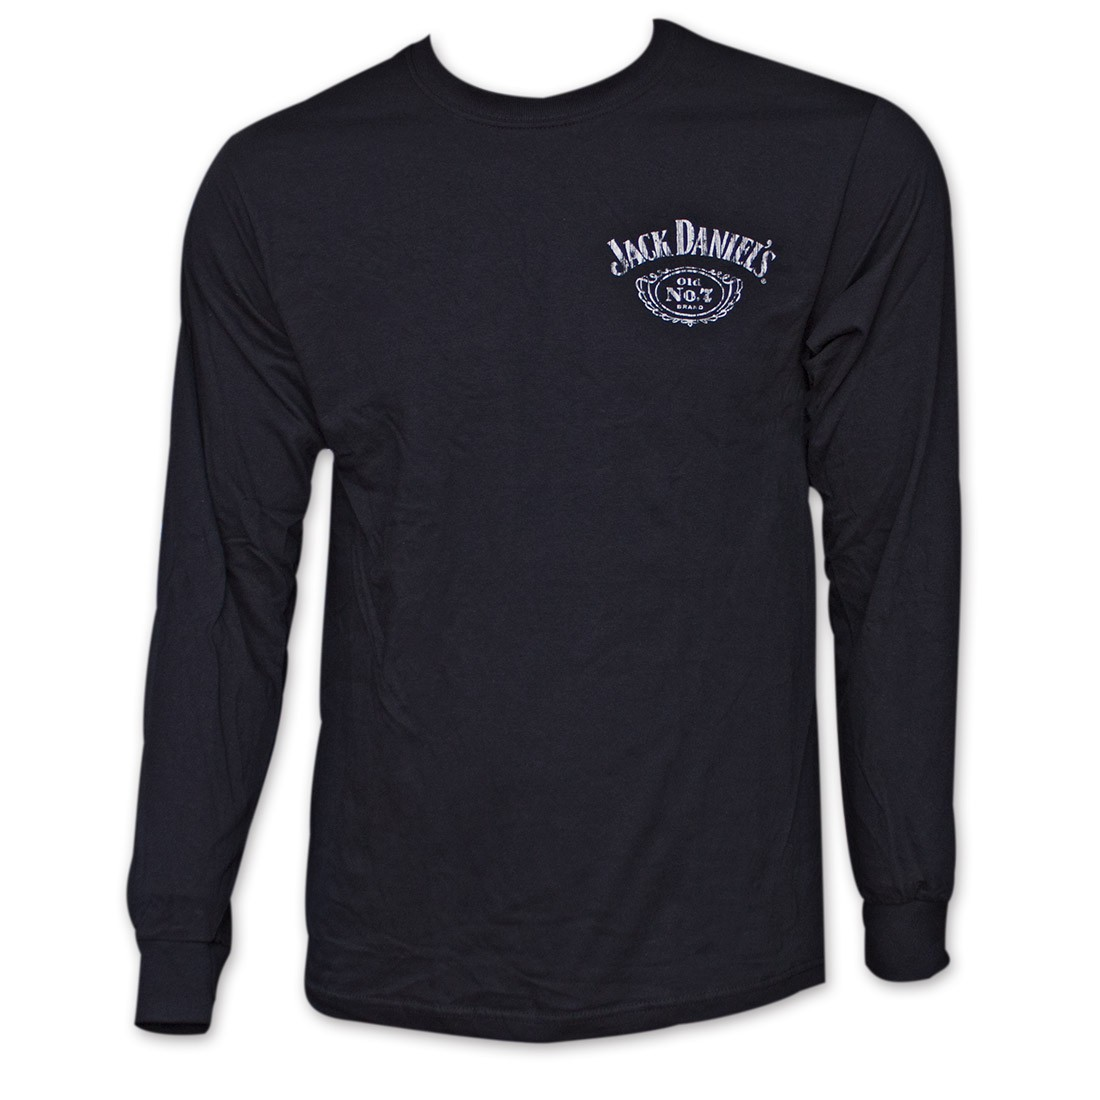 Jack Daniel's Classic Label Graphic Men's Black Long Sleeve Shirt